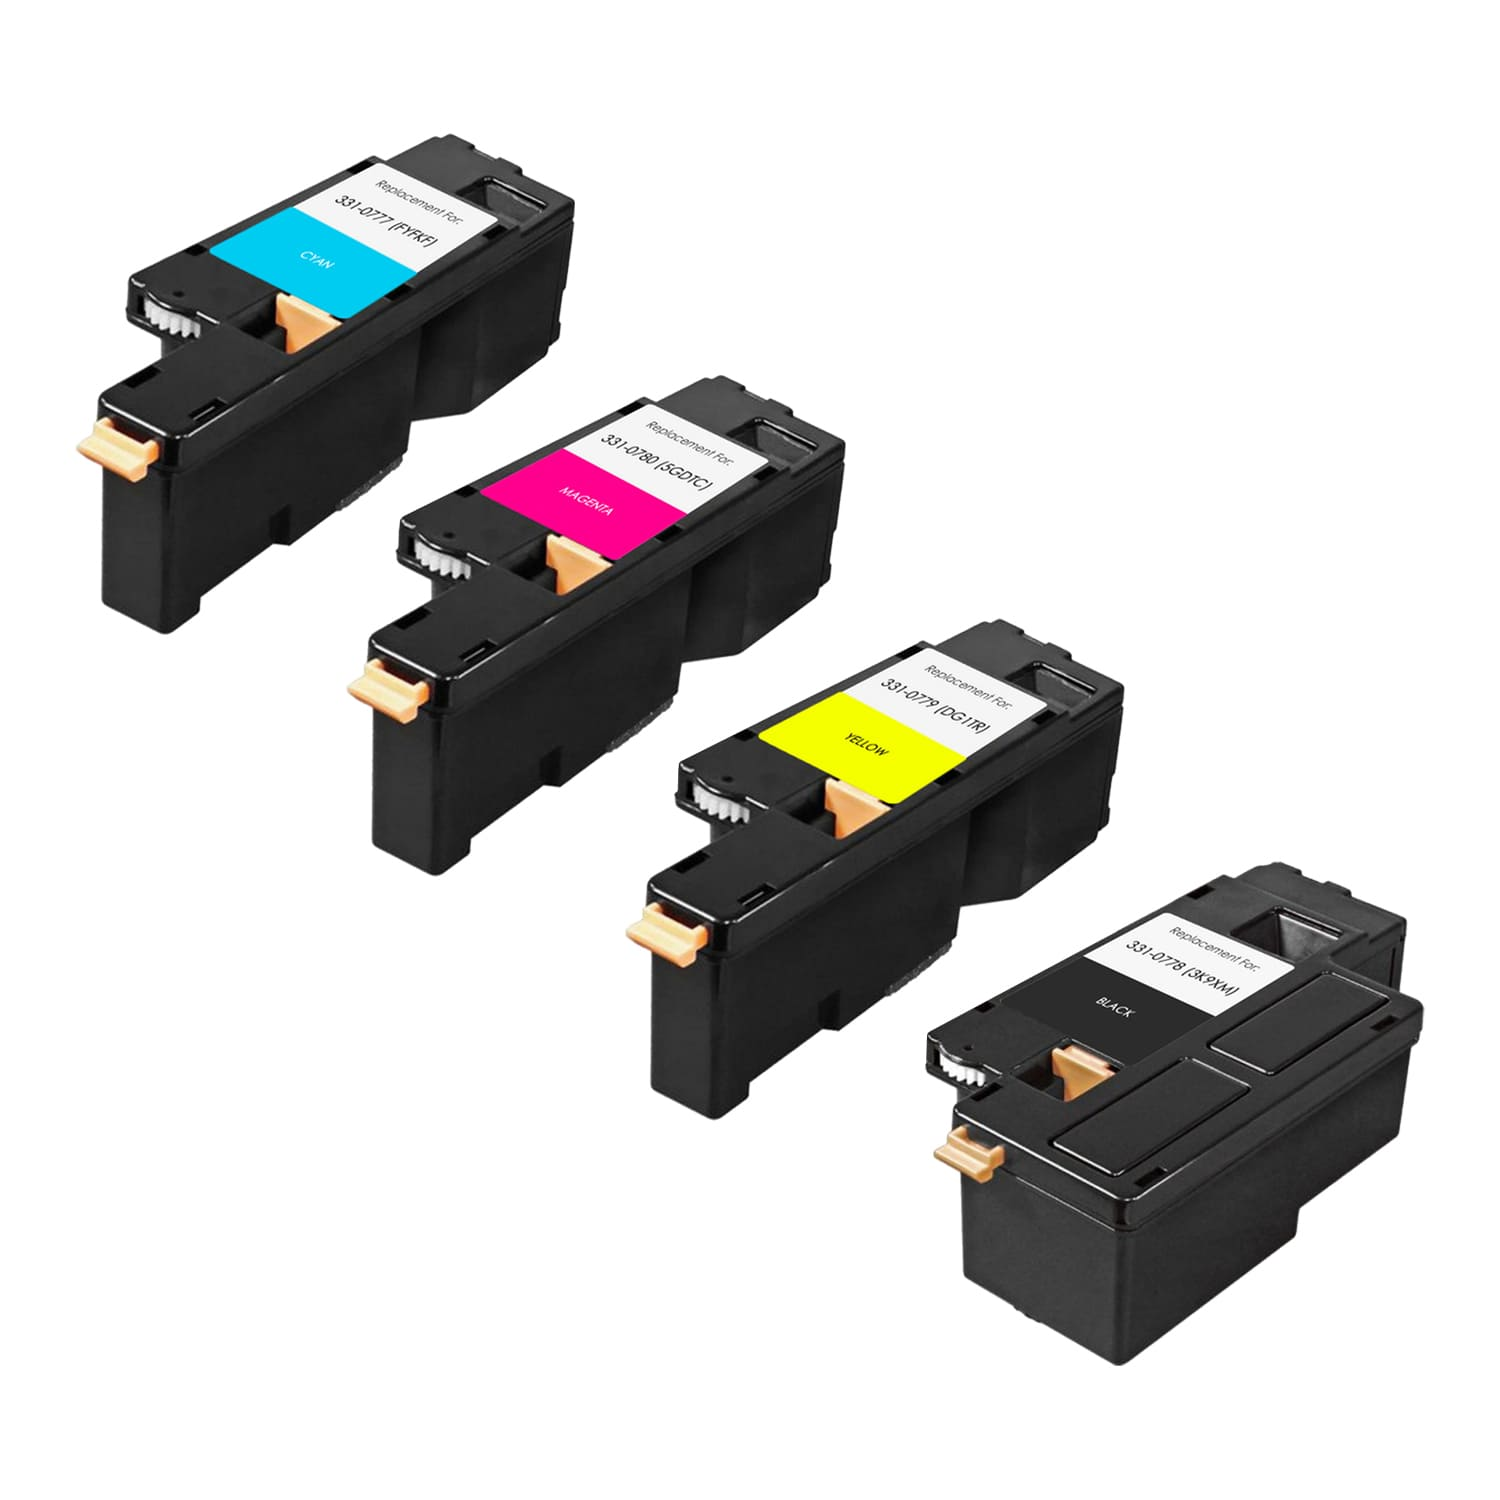 Compatible Dell 1250 Toner High Capacity Pack - 4 Cartridges